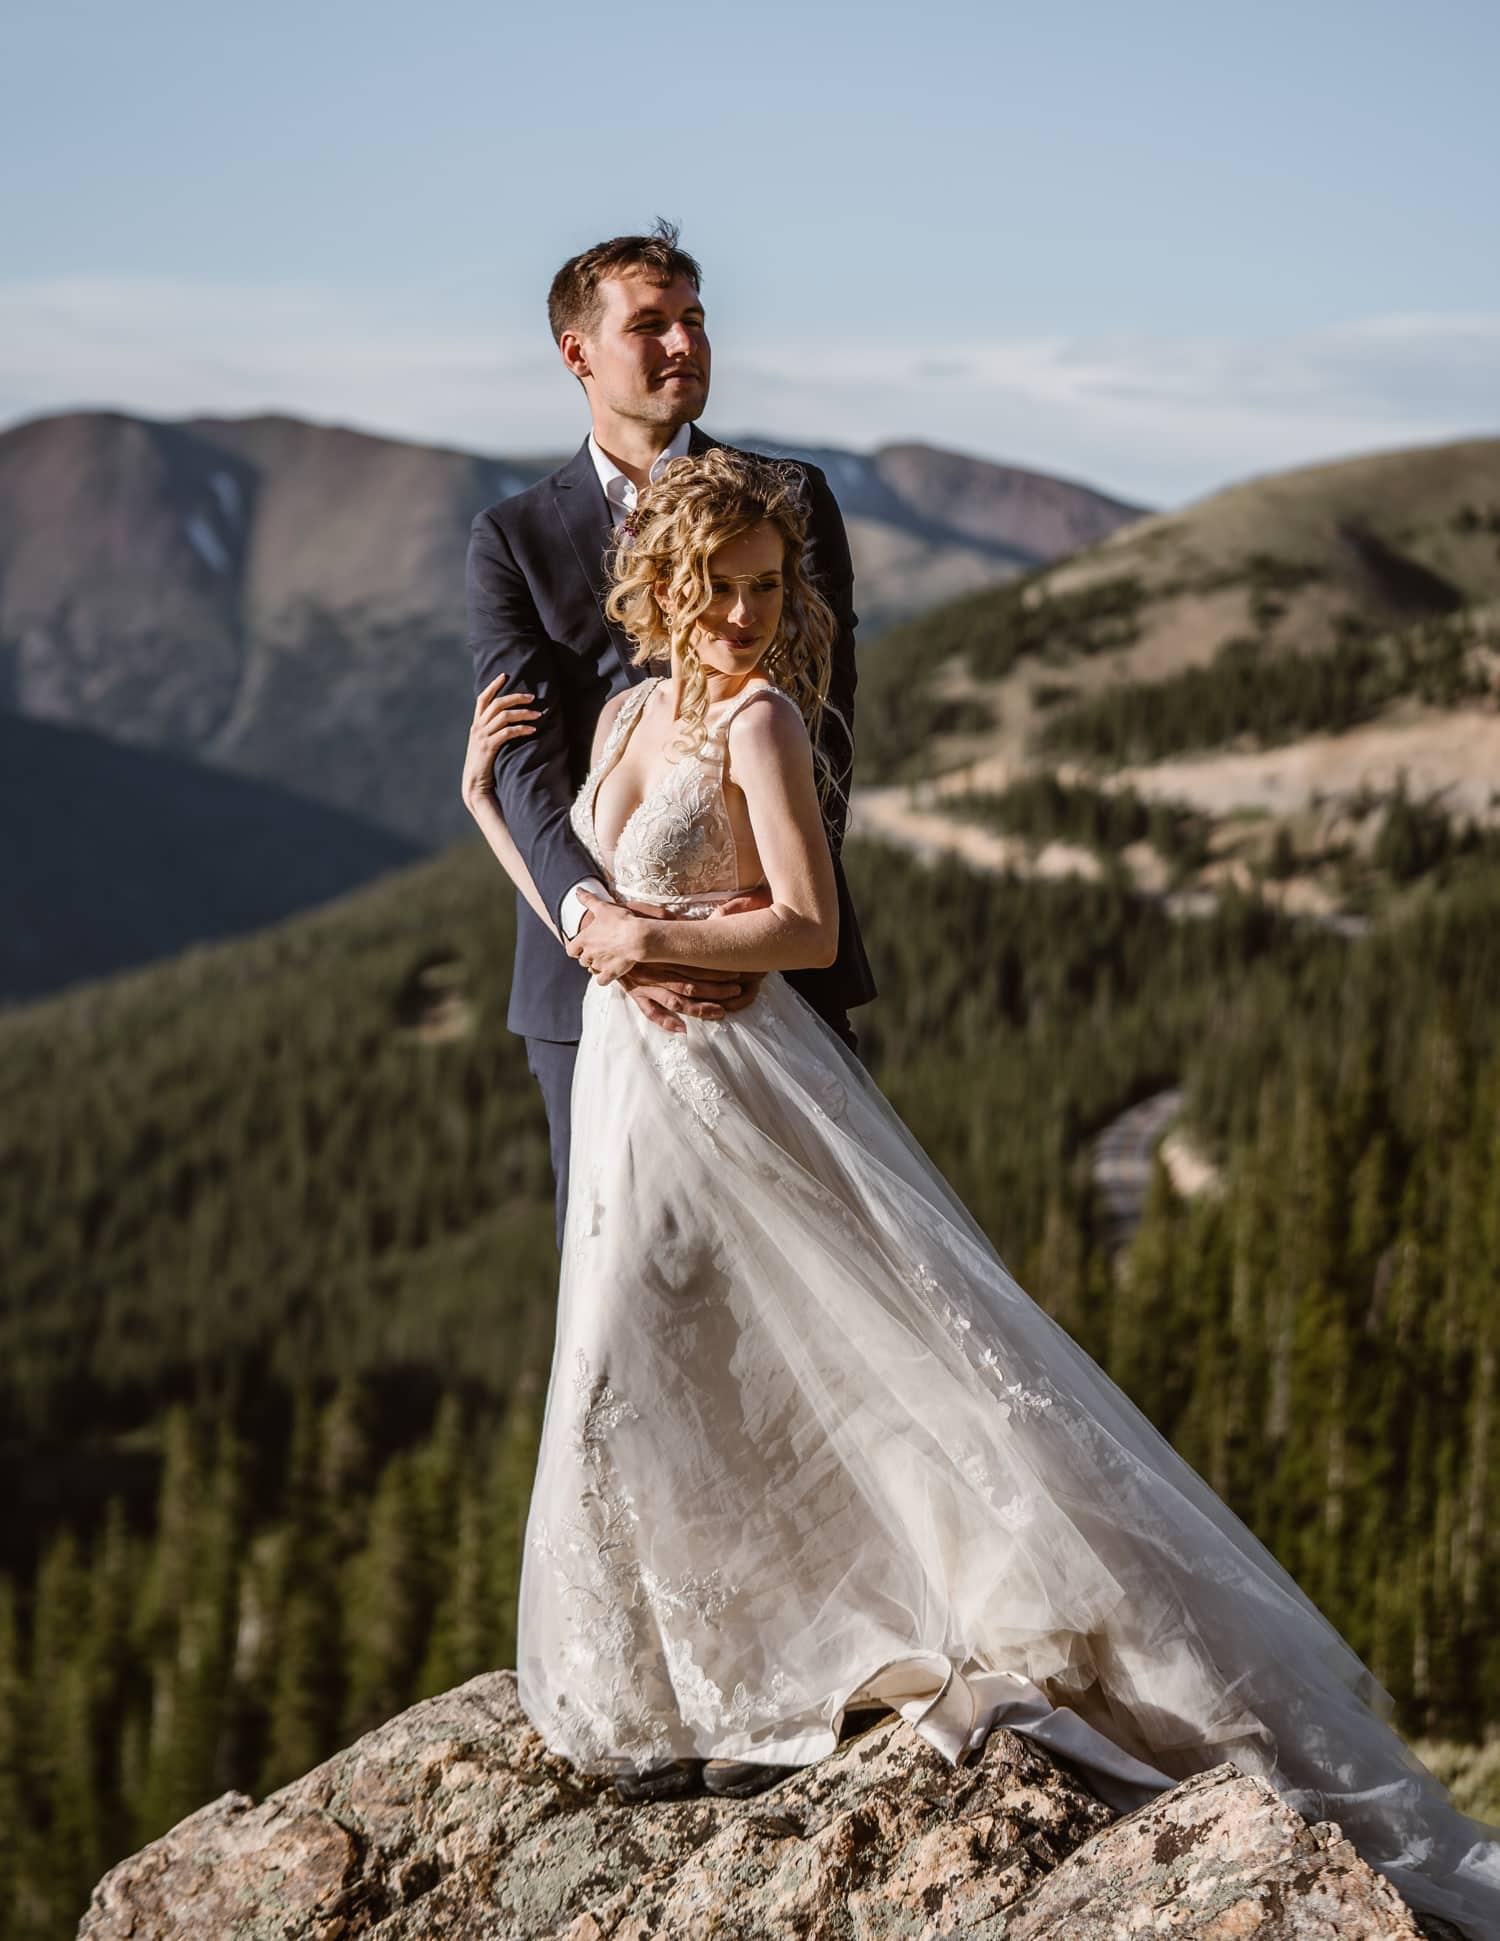 Top 10 Reasons Why You Should Elope Crazy Relatives